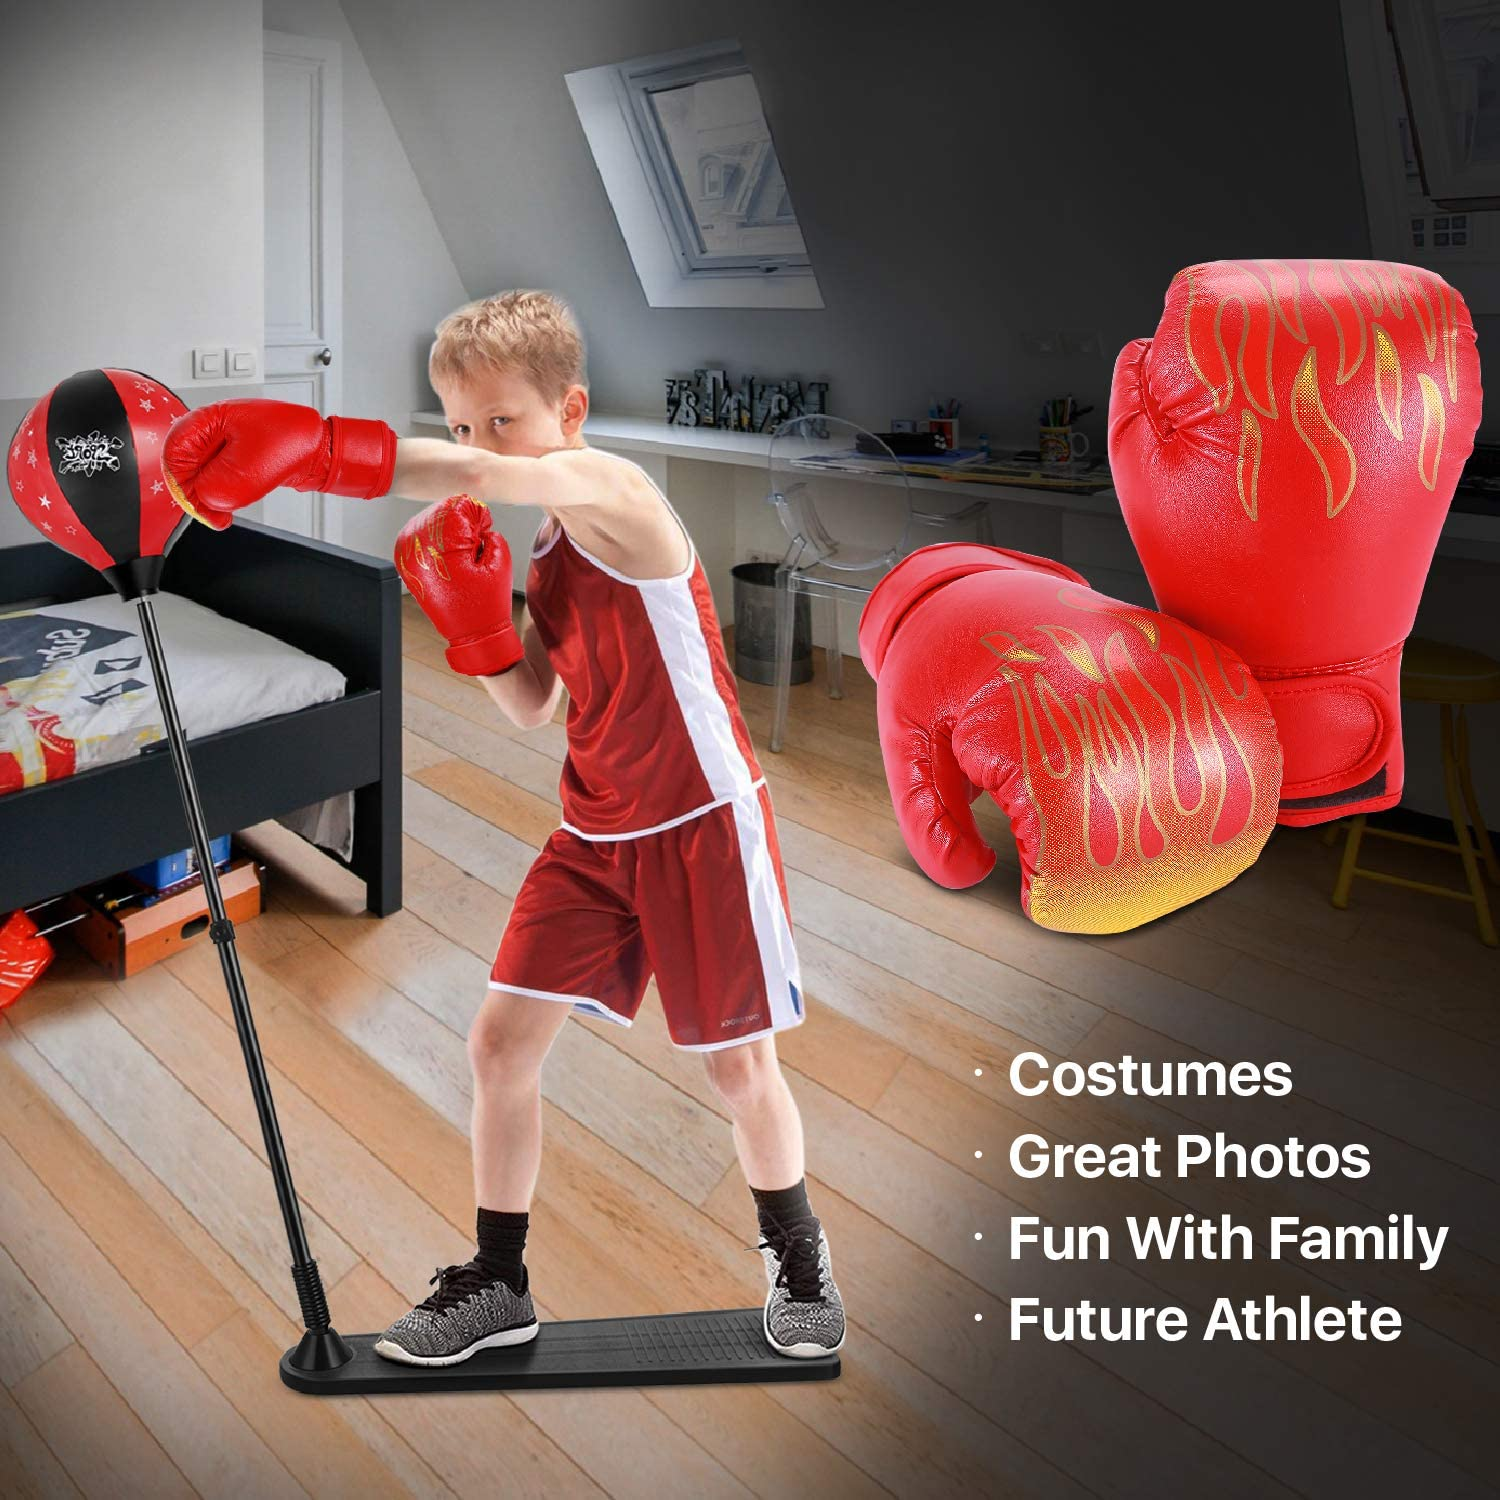 UFC Sparring Kickboxing Sandbag Sports Fitness Exercise Equipment Boys Children Flexzion Kids Boxing Gloves for 3-8 Ages All-Purpose Training Punching Bag Mitts w//Wrap-Around Support Red Blaze